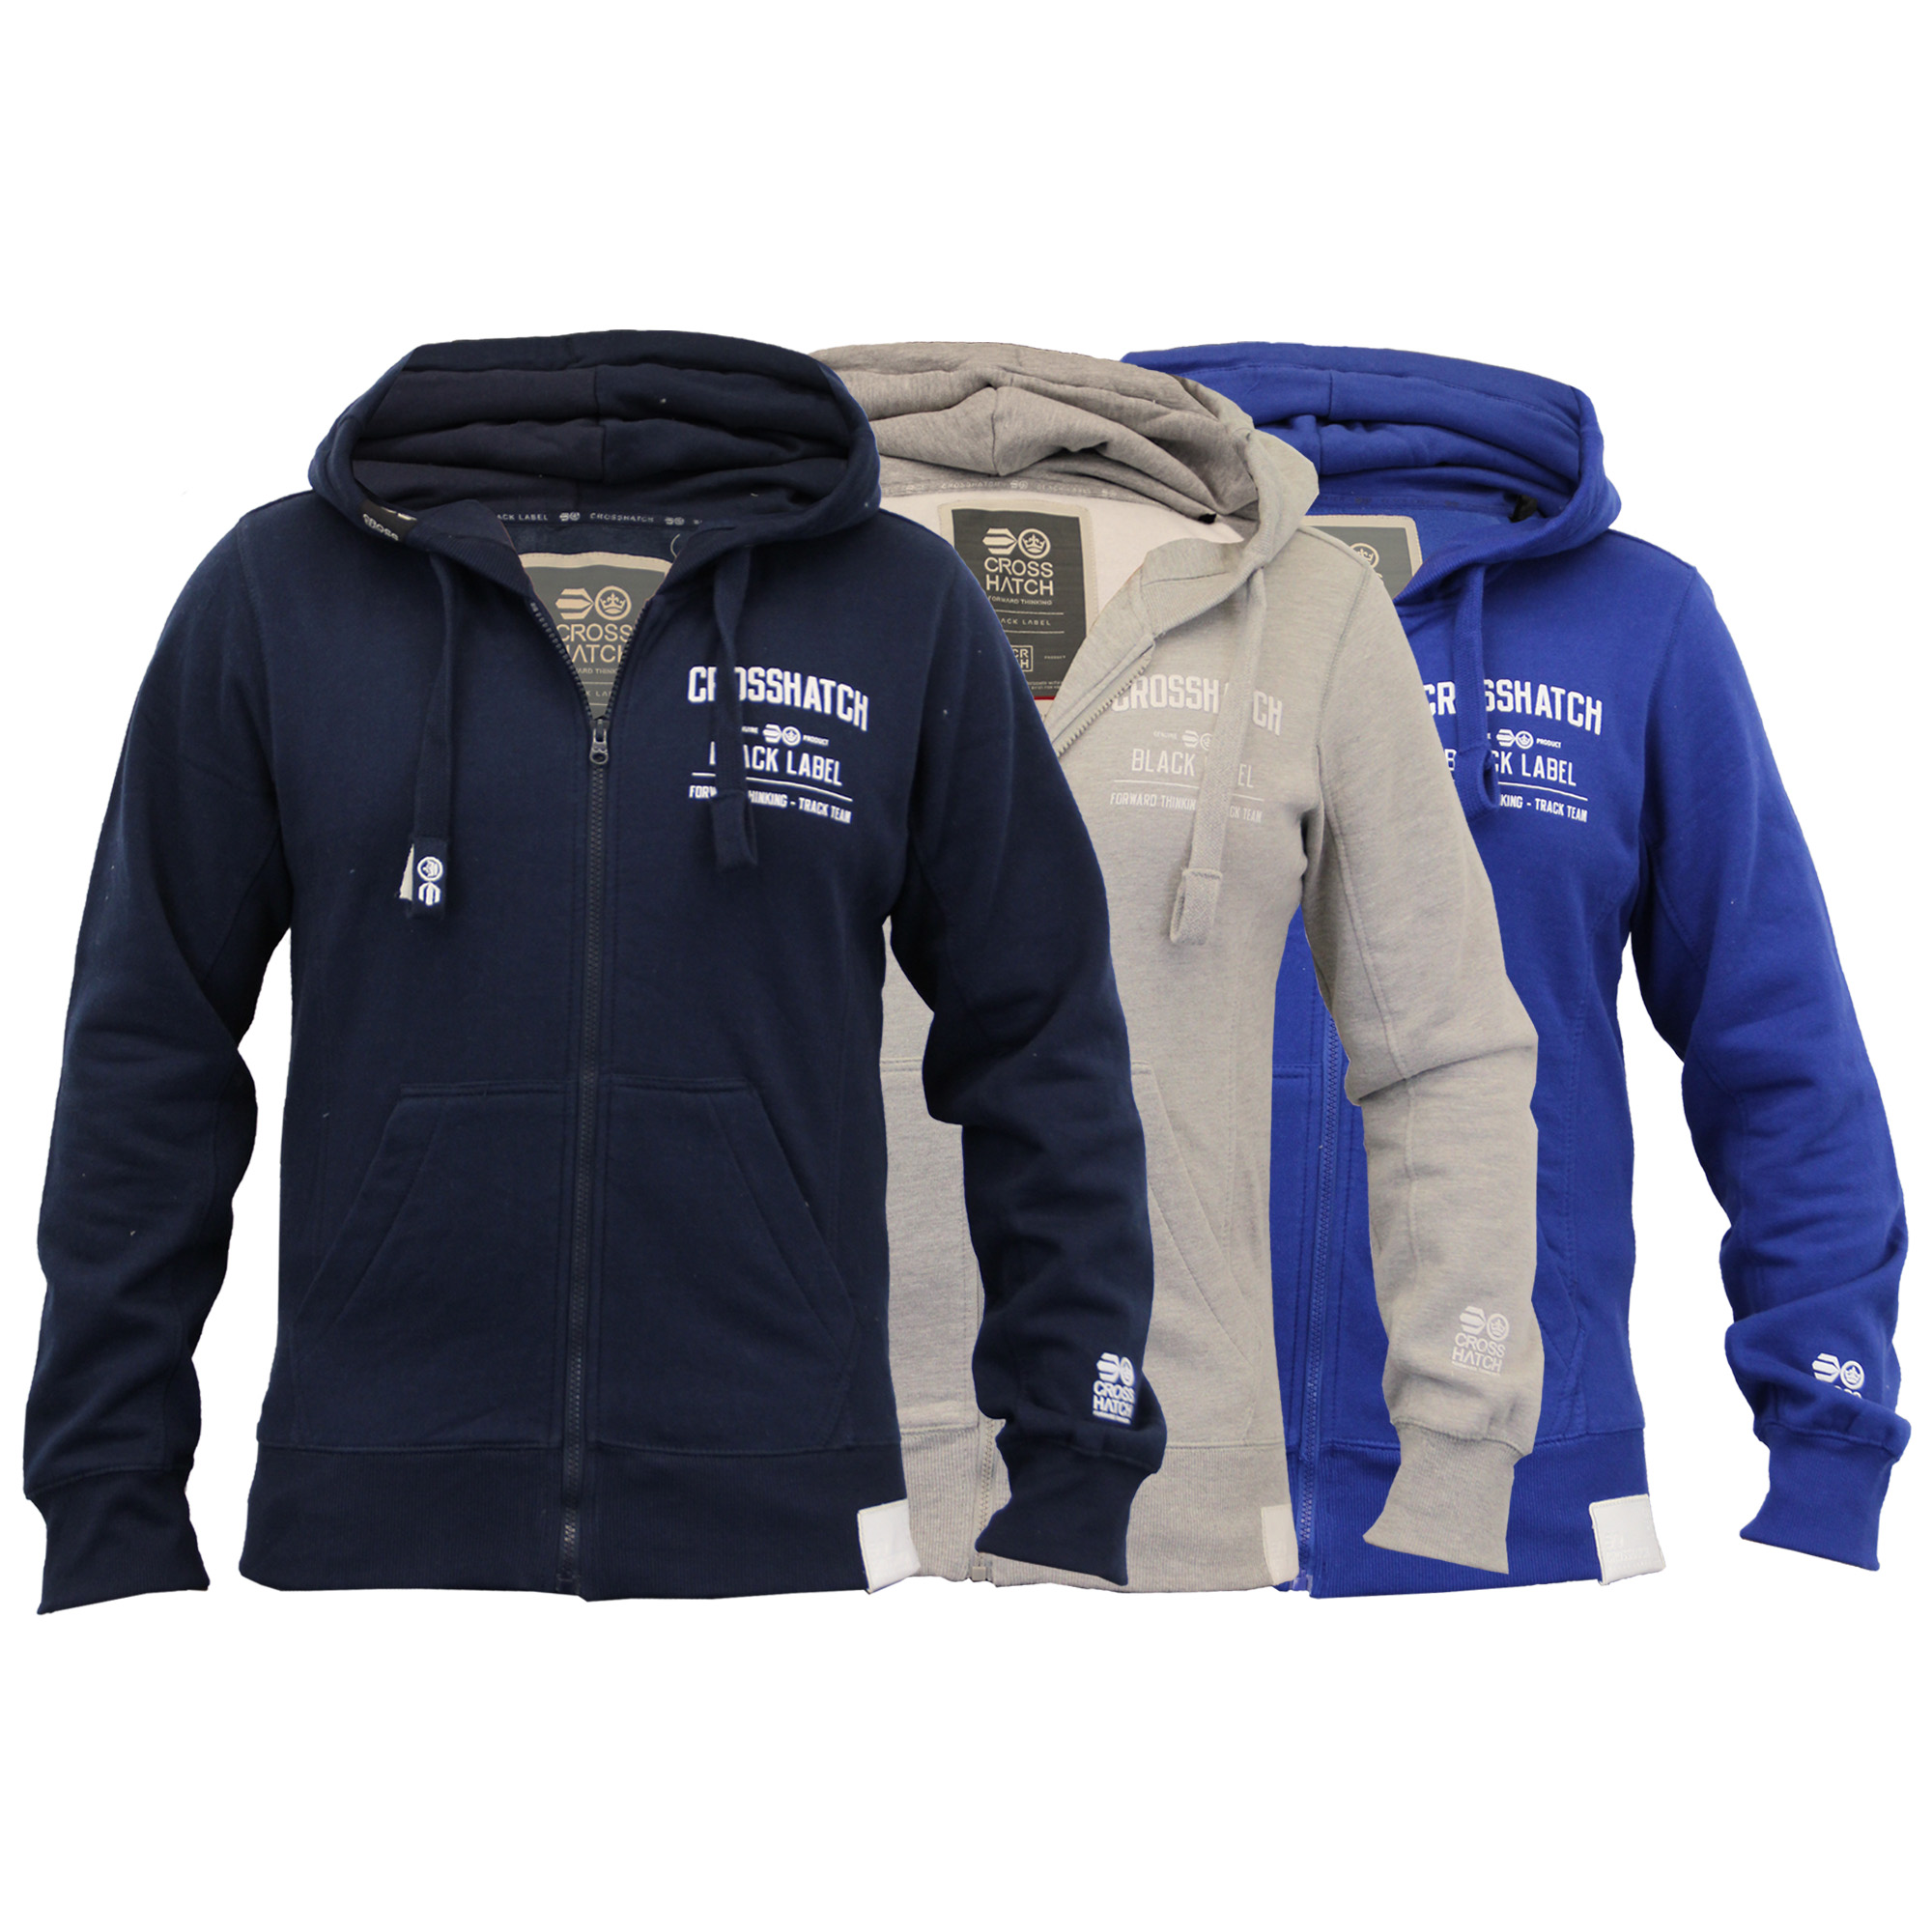 Mens-Hooded-Fleece-Lined-Top-Sweatshirt-By-Crosshatch thumbnail 4